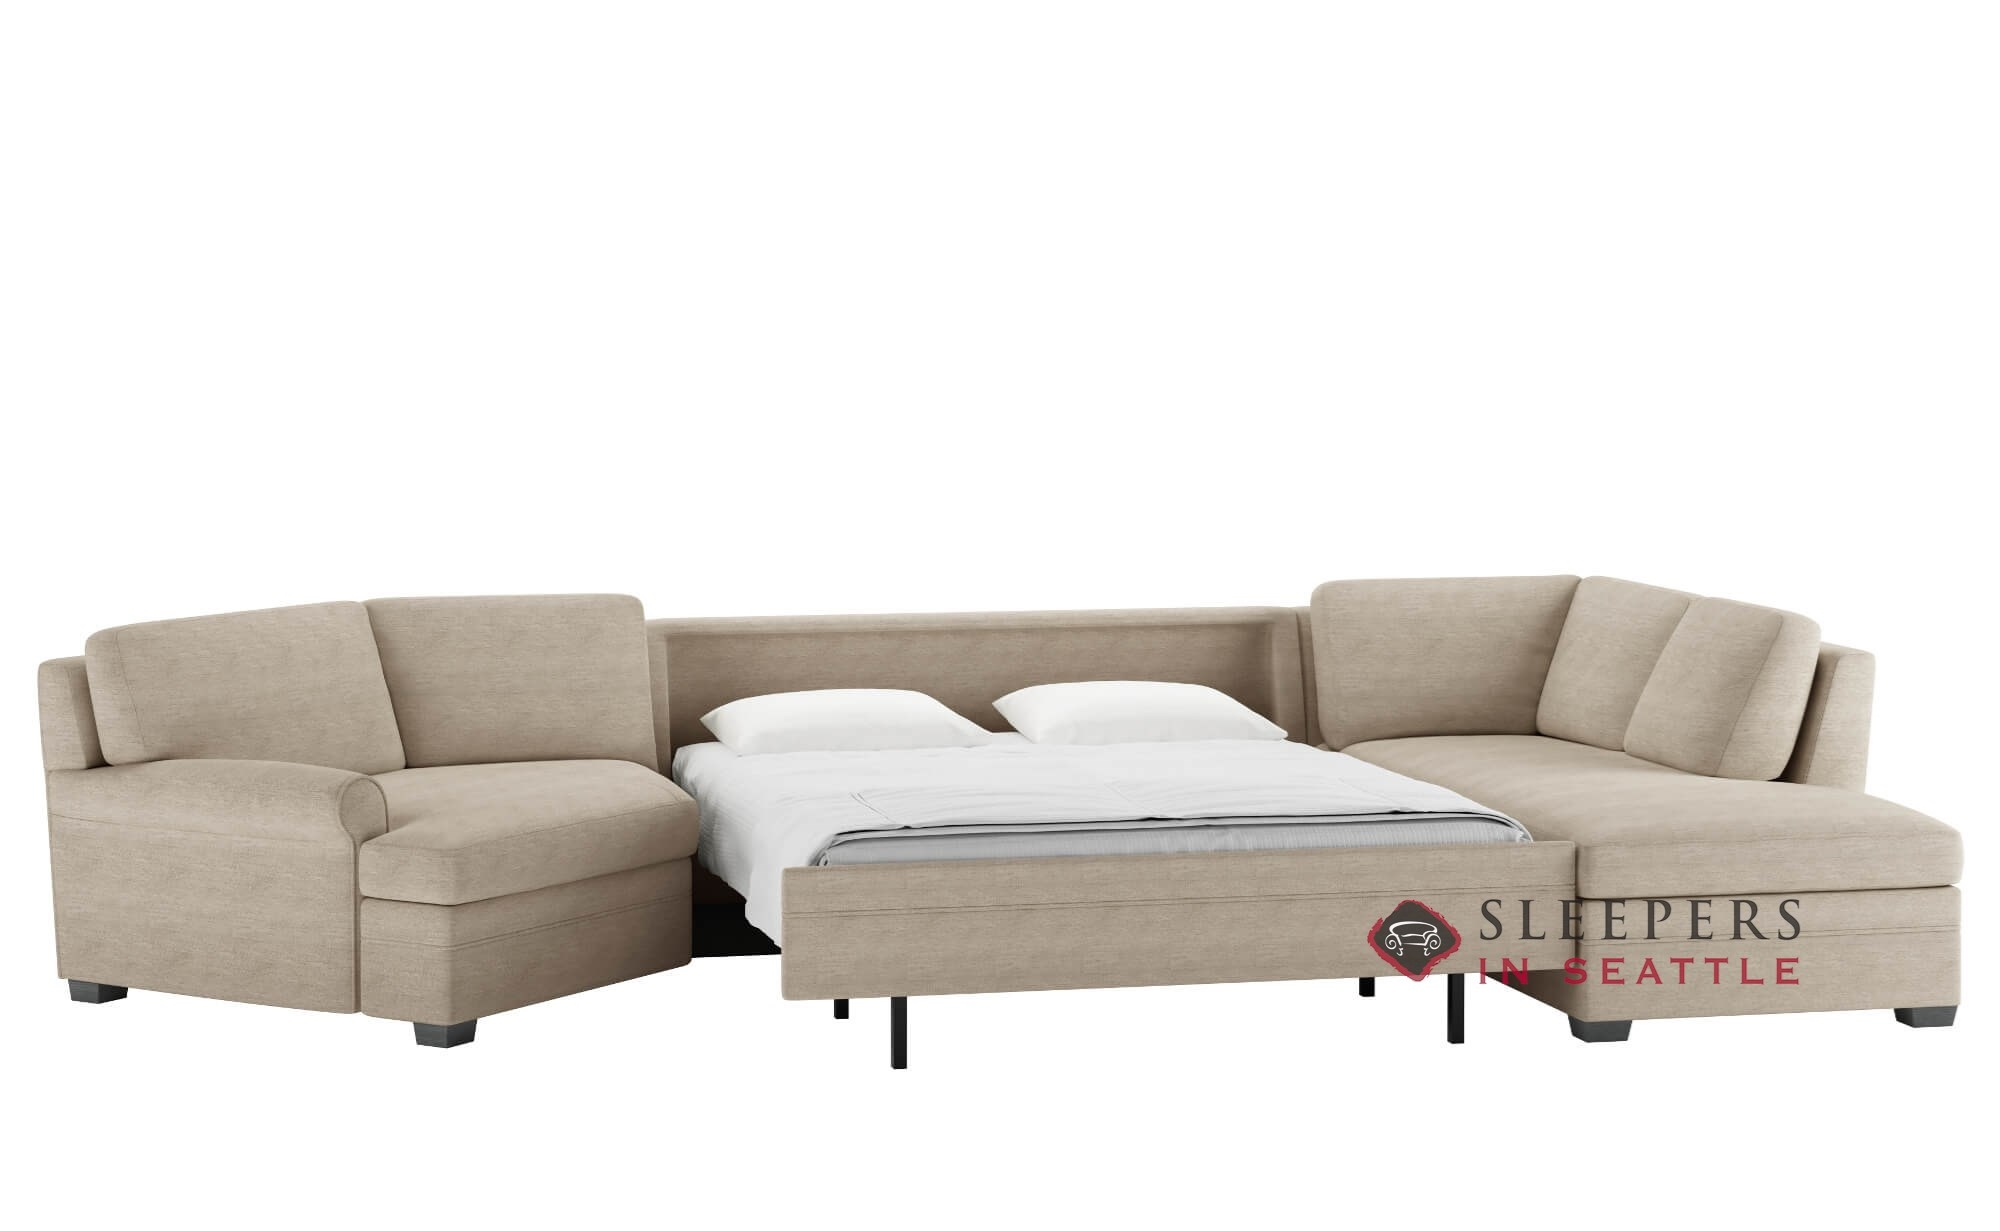 american leather sleeper sofa full size cheap sofas york pa customize and personalize gaines multiple sizes available